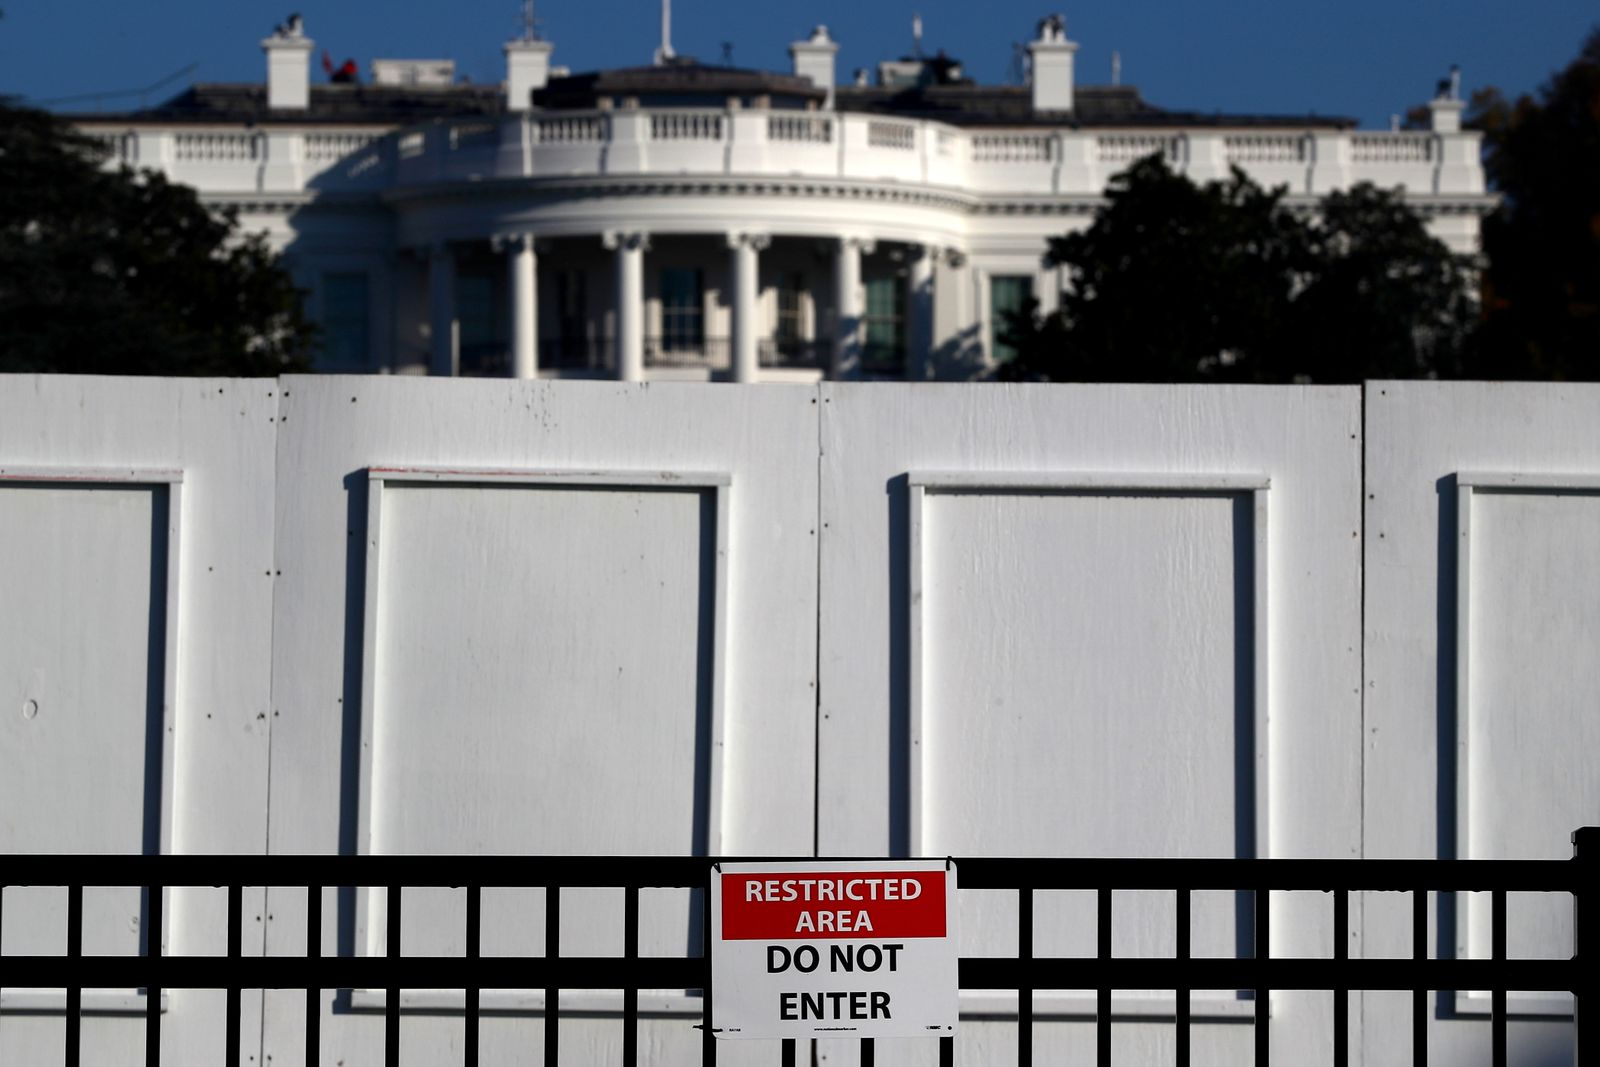 """A """"Do Not Enter"""" sign hangs on a fence in front of the White House, days after former Vice President Joe Biden was declared the winner of the 2020 U.S. presidential election, in Washington, DC"""